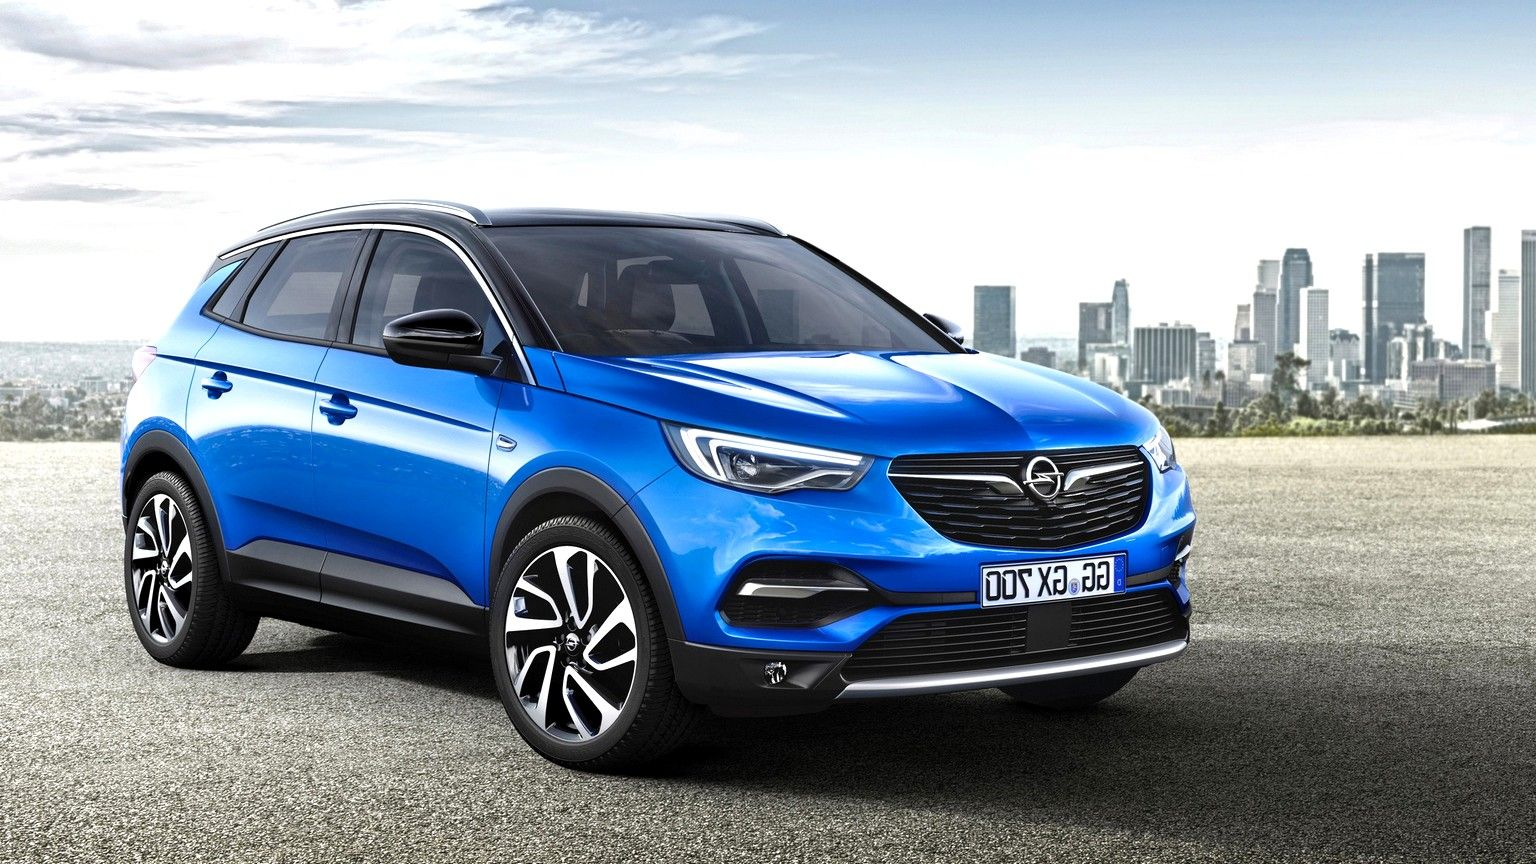 opel grandland x 2017 hintergrundbilder wallpaper auto bilder pinterest volkswagen. Black Bedroom Furniture Sets. Home Design Ideas